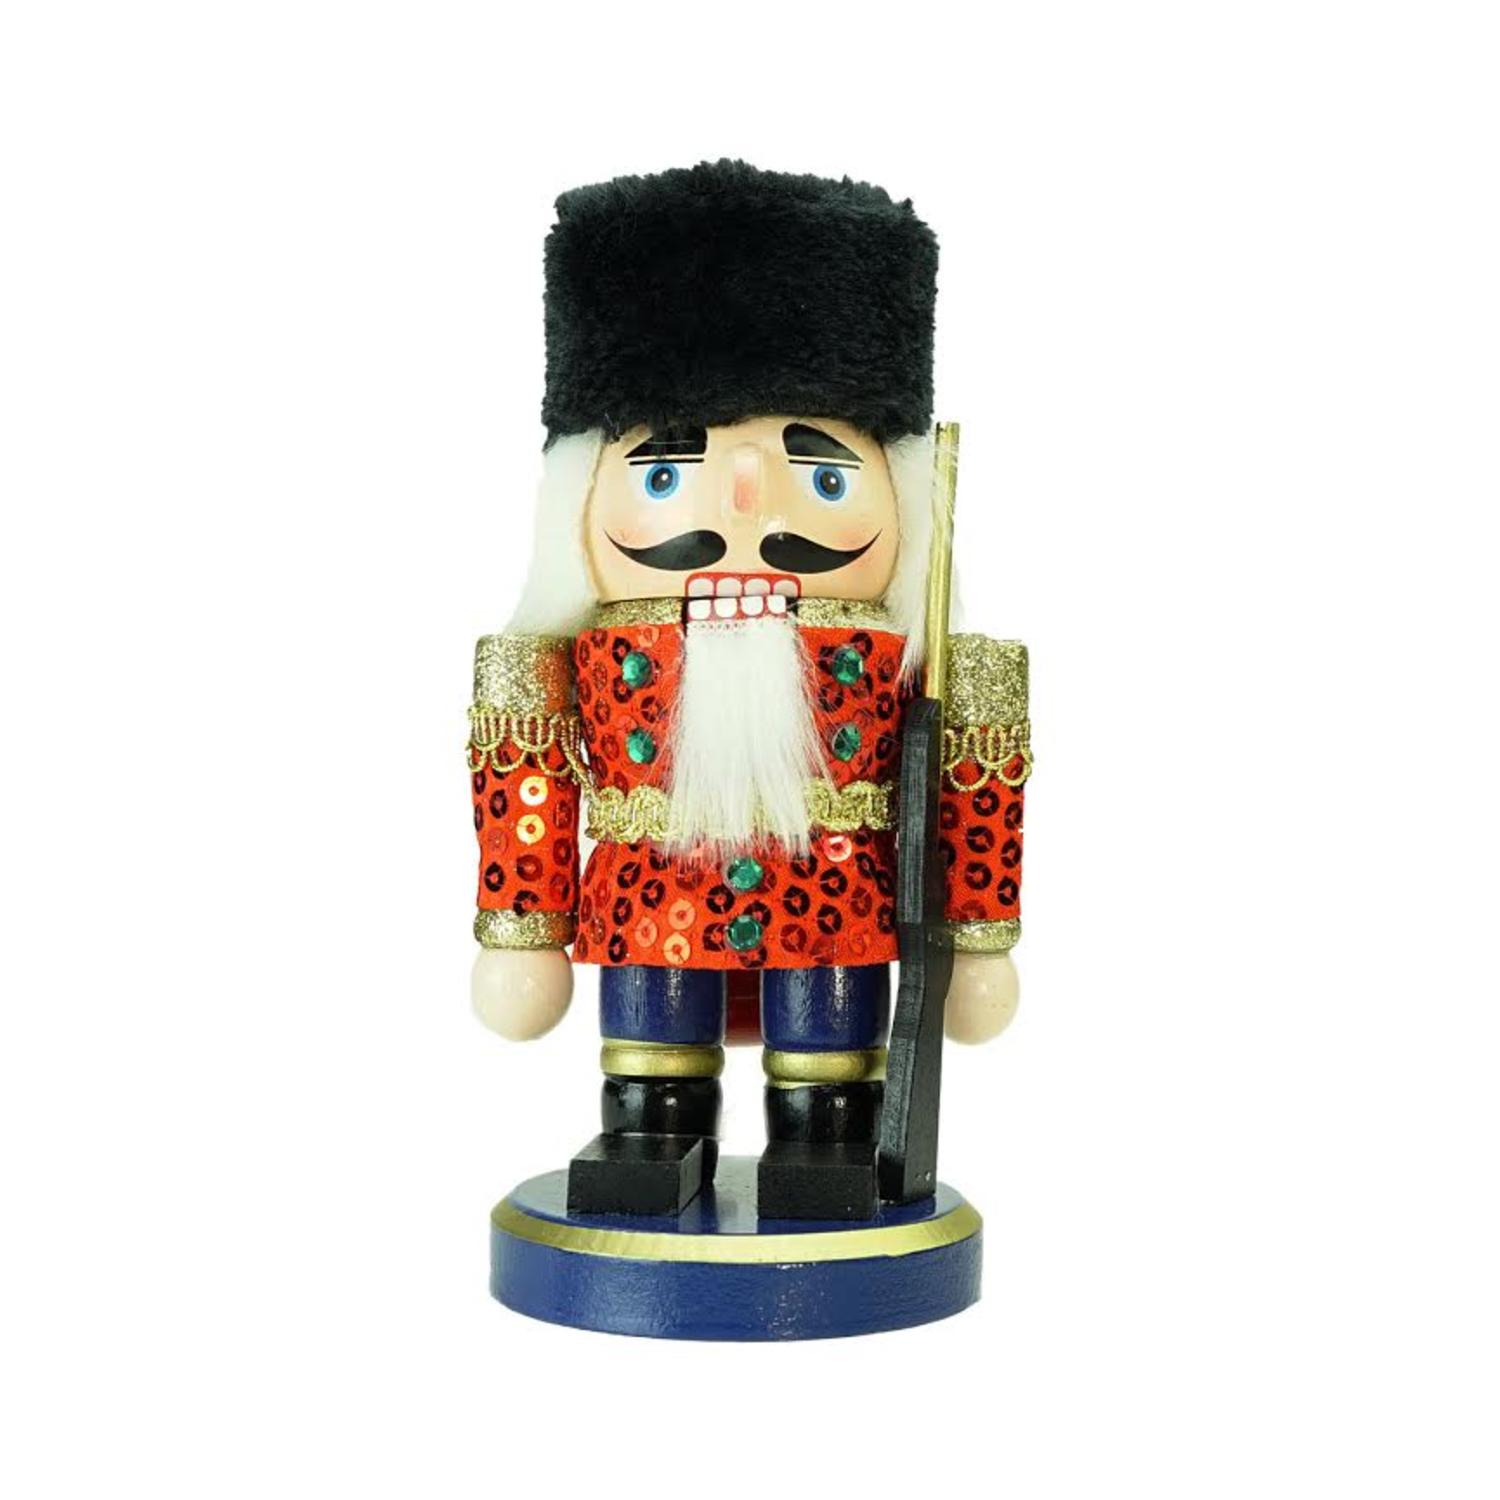 "7"" Red, Gold and Black Chubby Wooden Christmas Nutcracker Soldier"